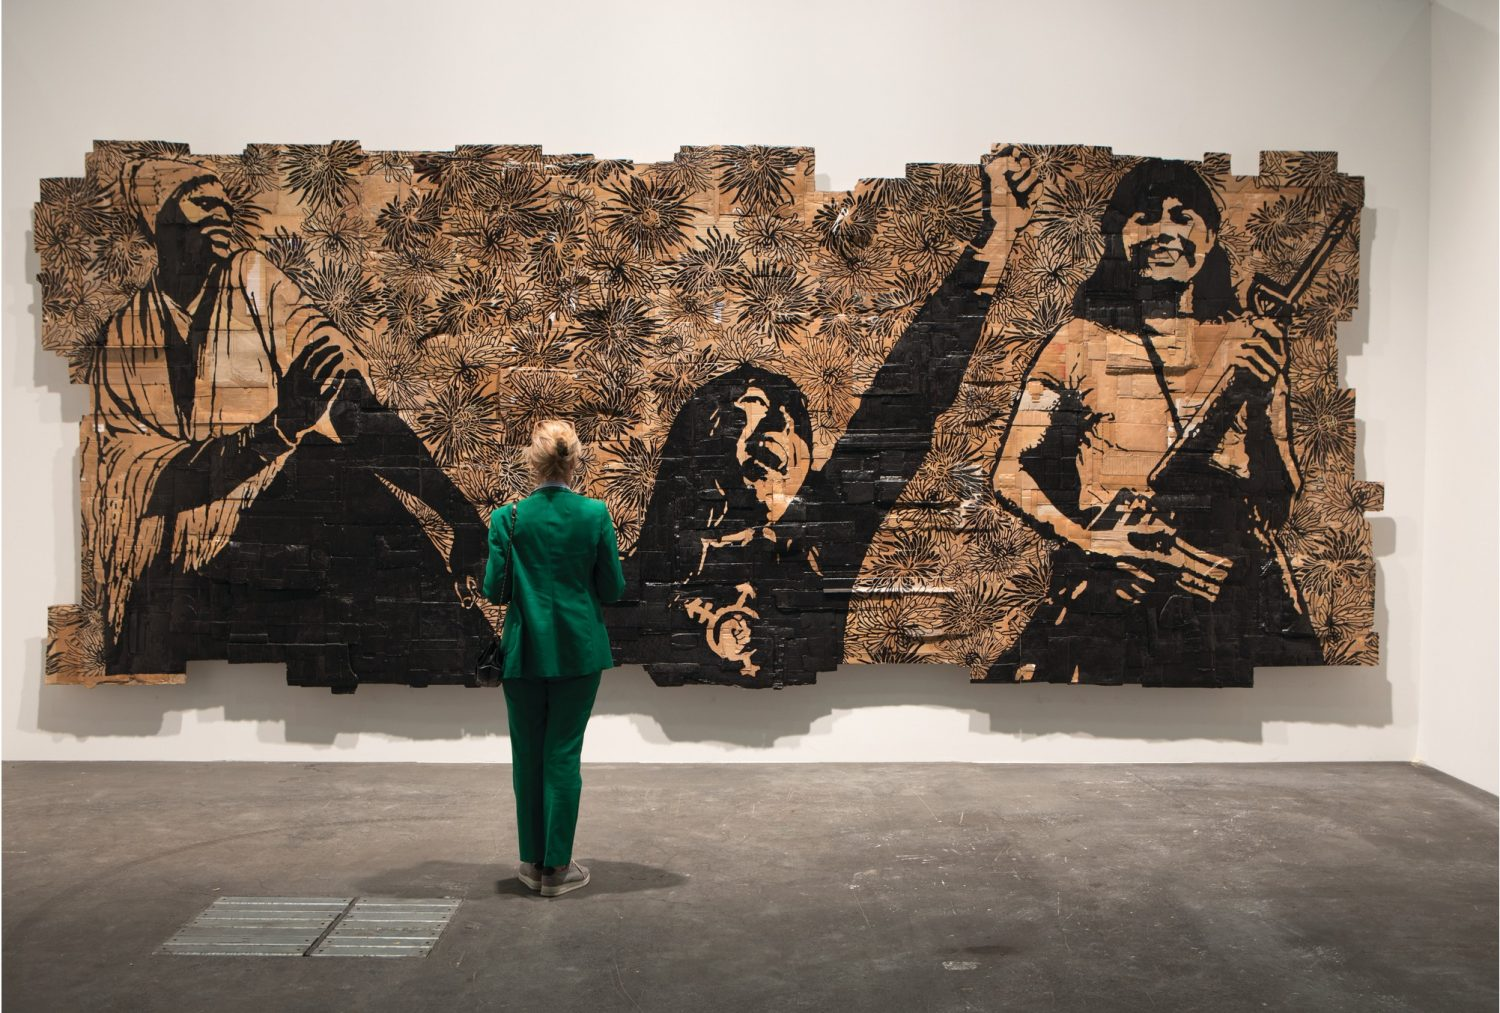 art basel 48th Edition of Art Basel Considered the Most Successful One 48th Edition of Art Basel Considered the Most Successful One Susanne Vielmetter 1